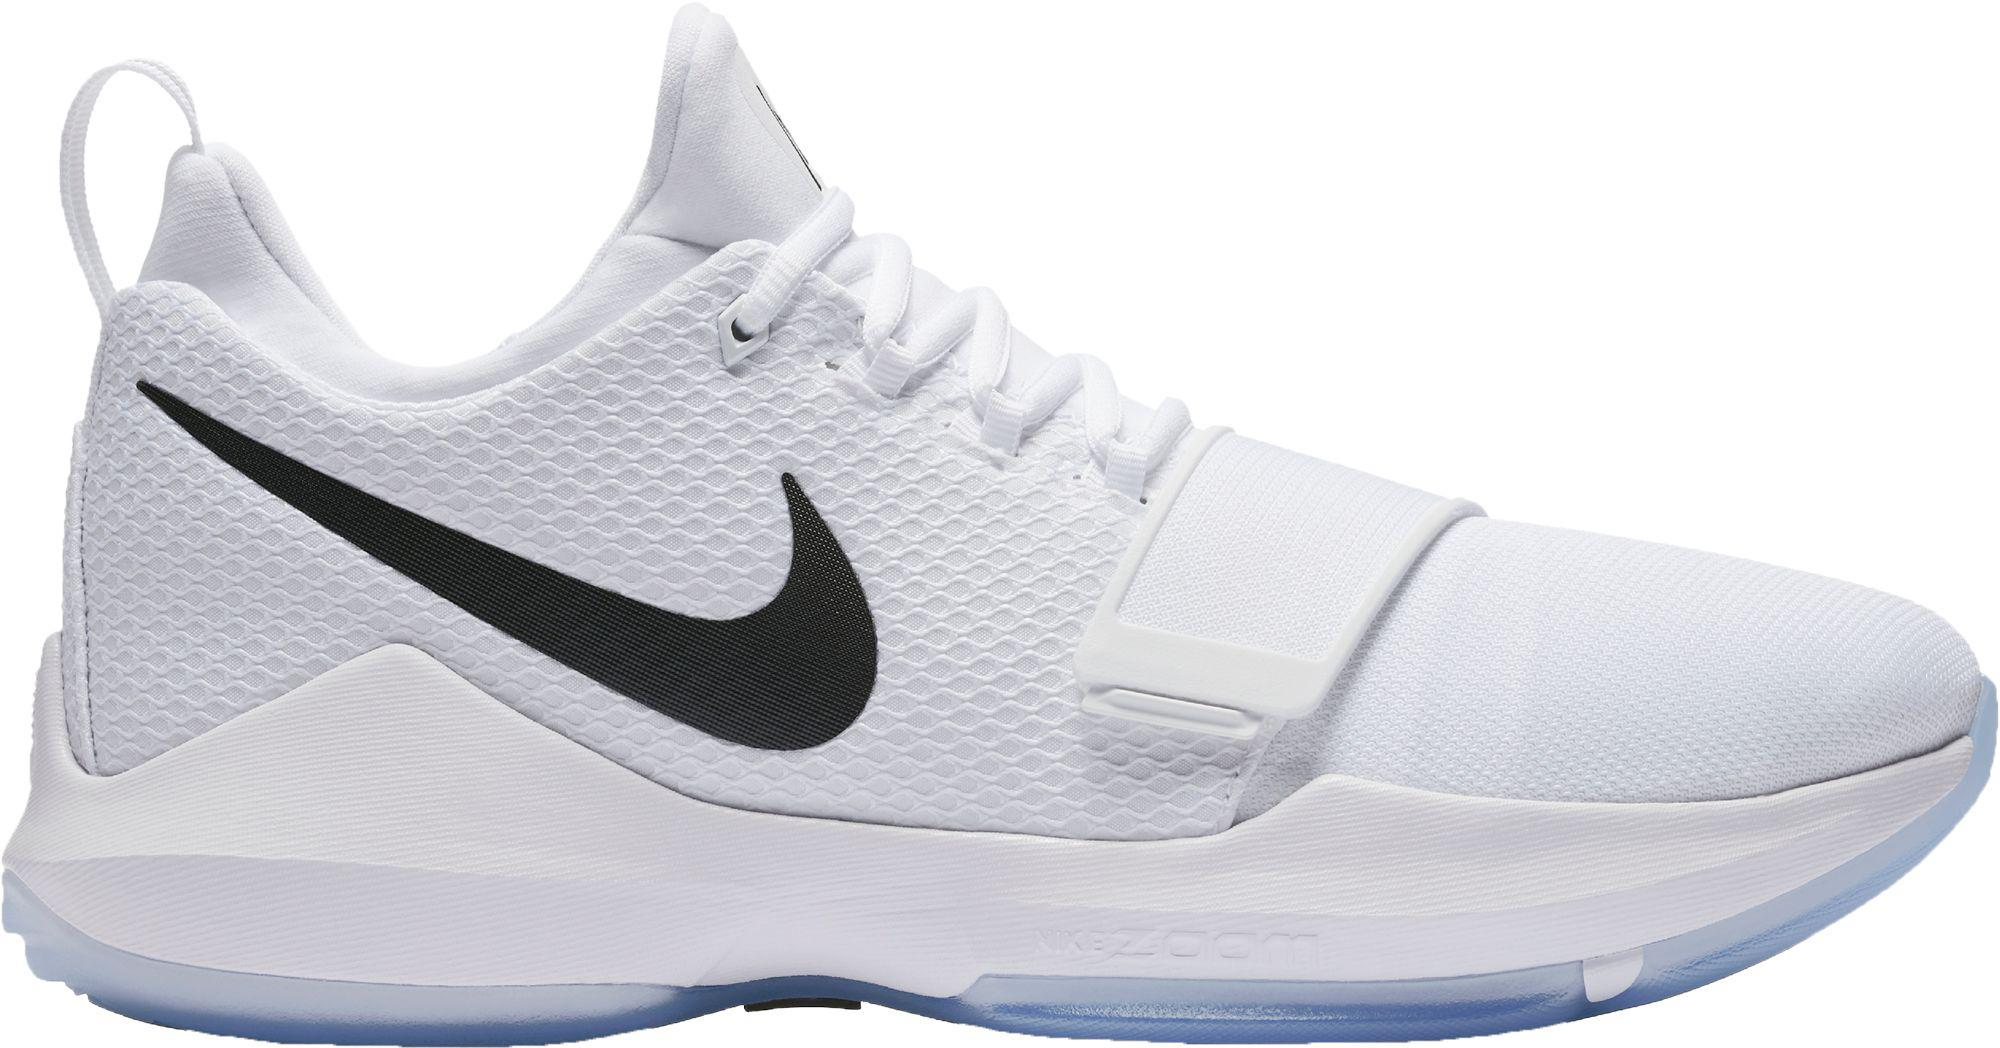 2c3ad303a562 Nike Pg 1 Basketball Shoes in White for Men - Lyst